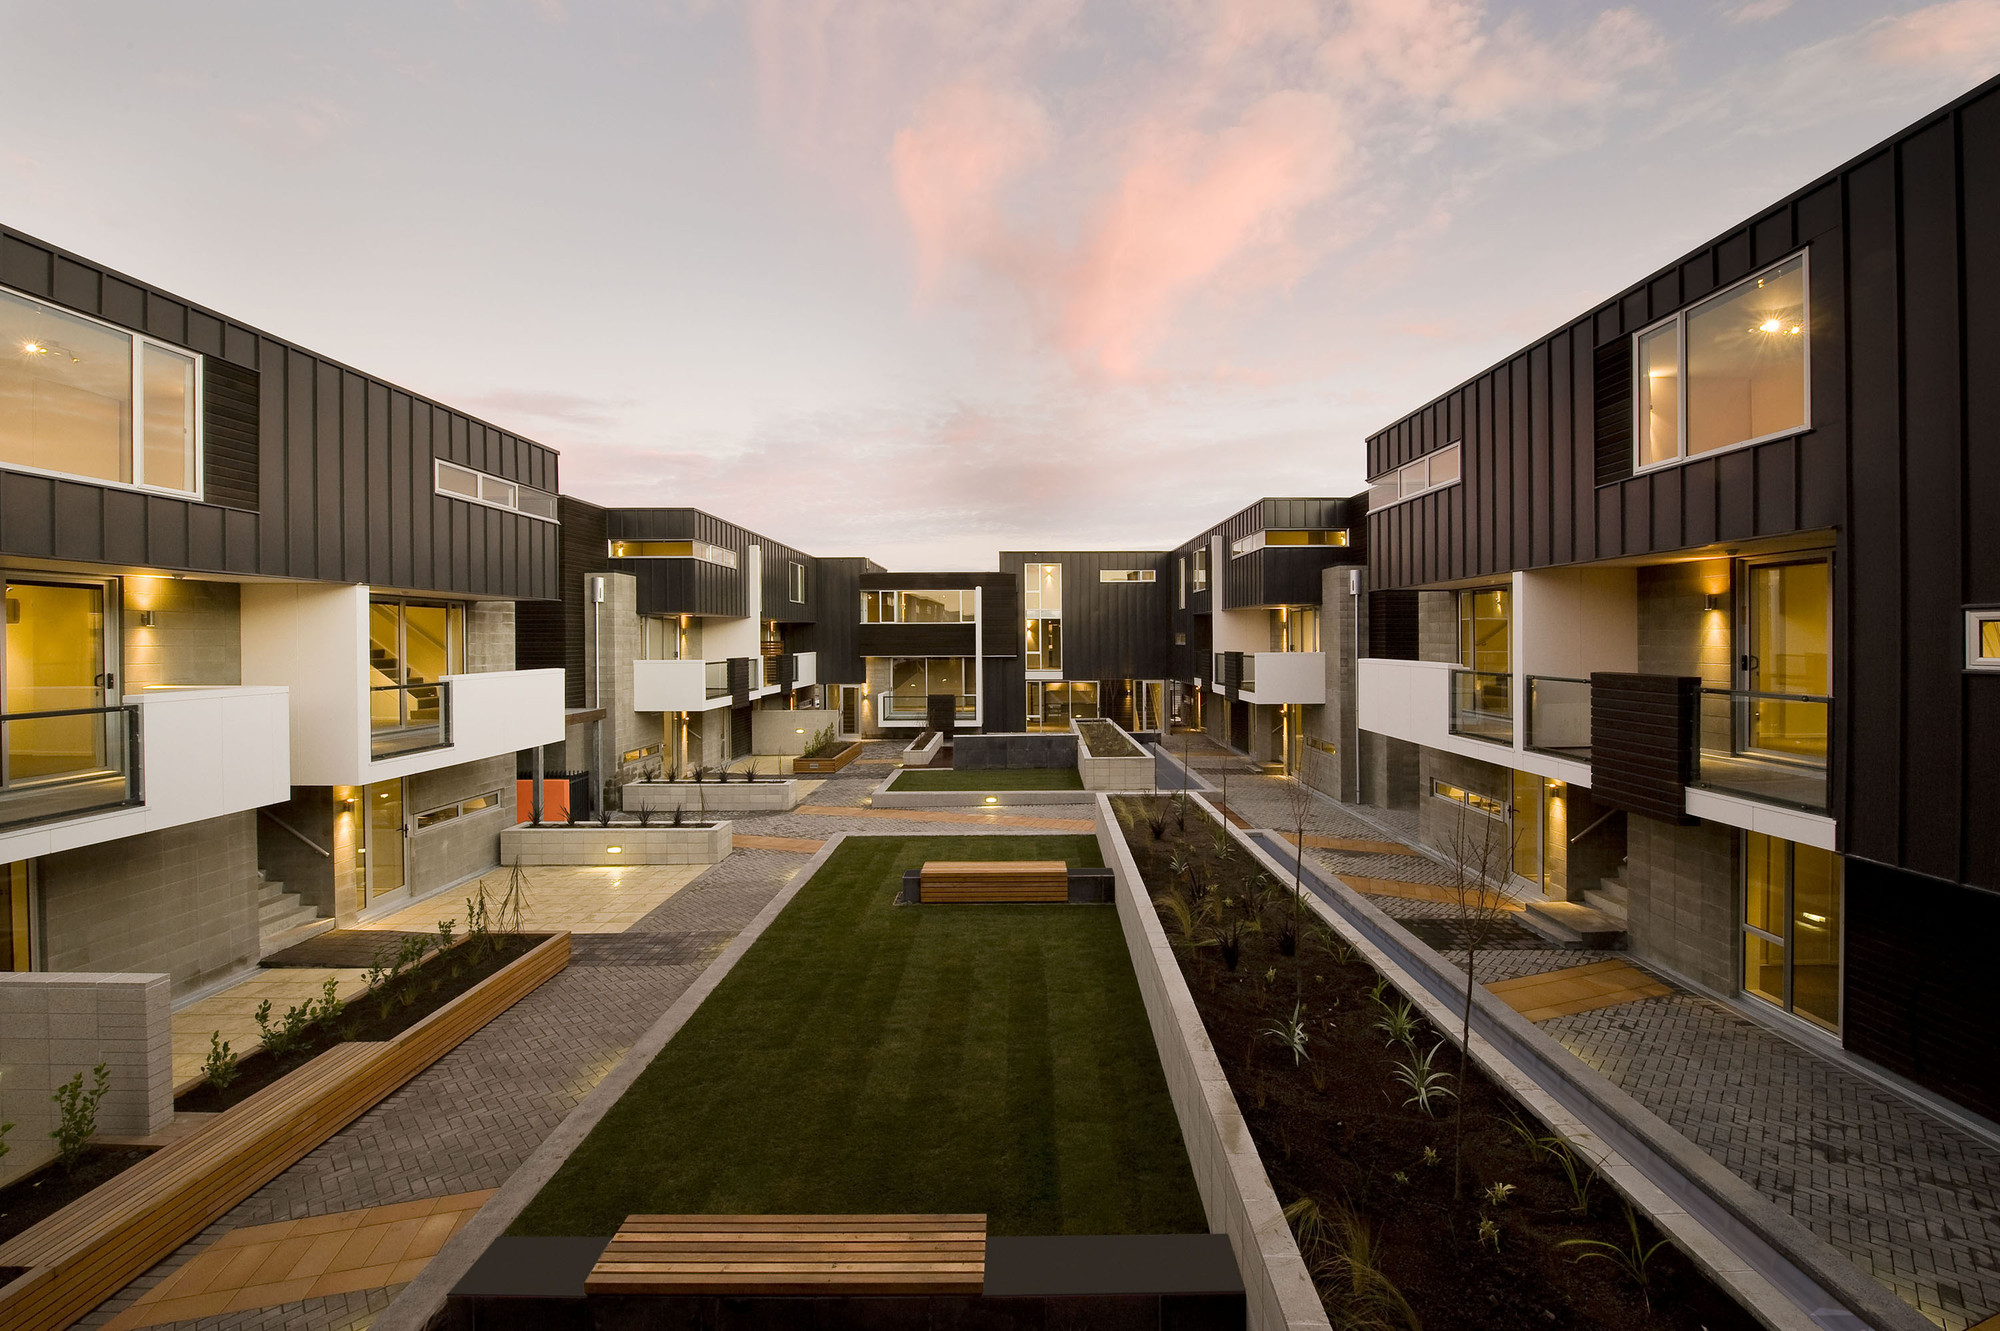 Wilton Close / Cymon Allfrey Architects, © Stephen Goodenough